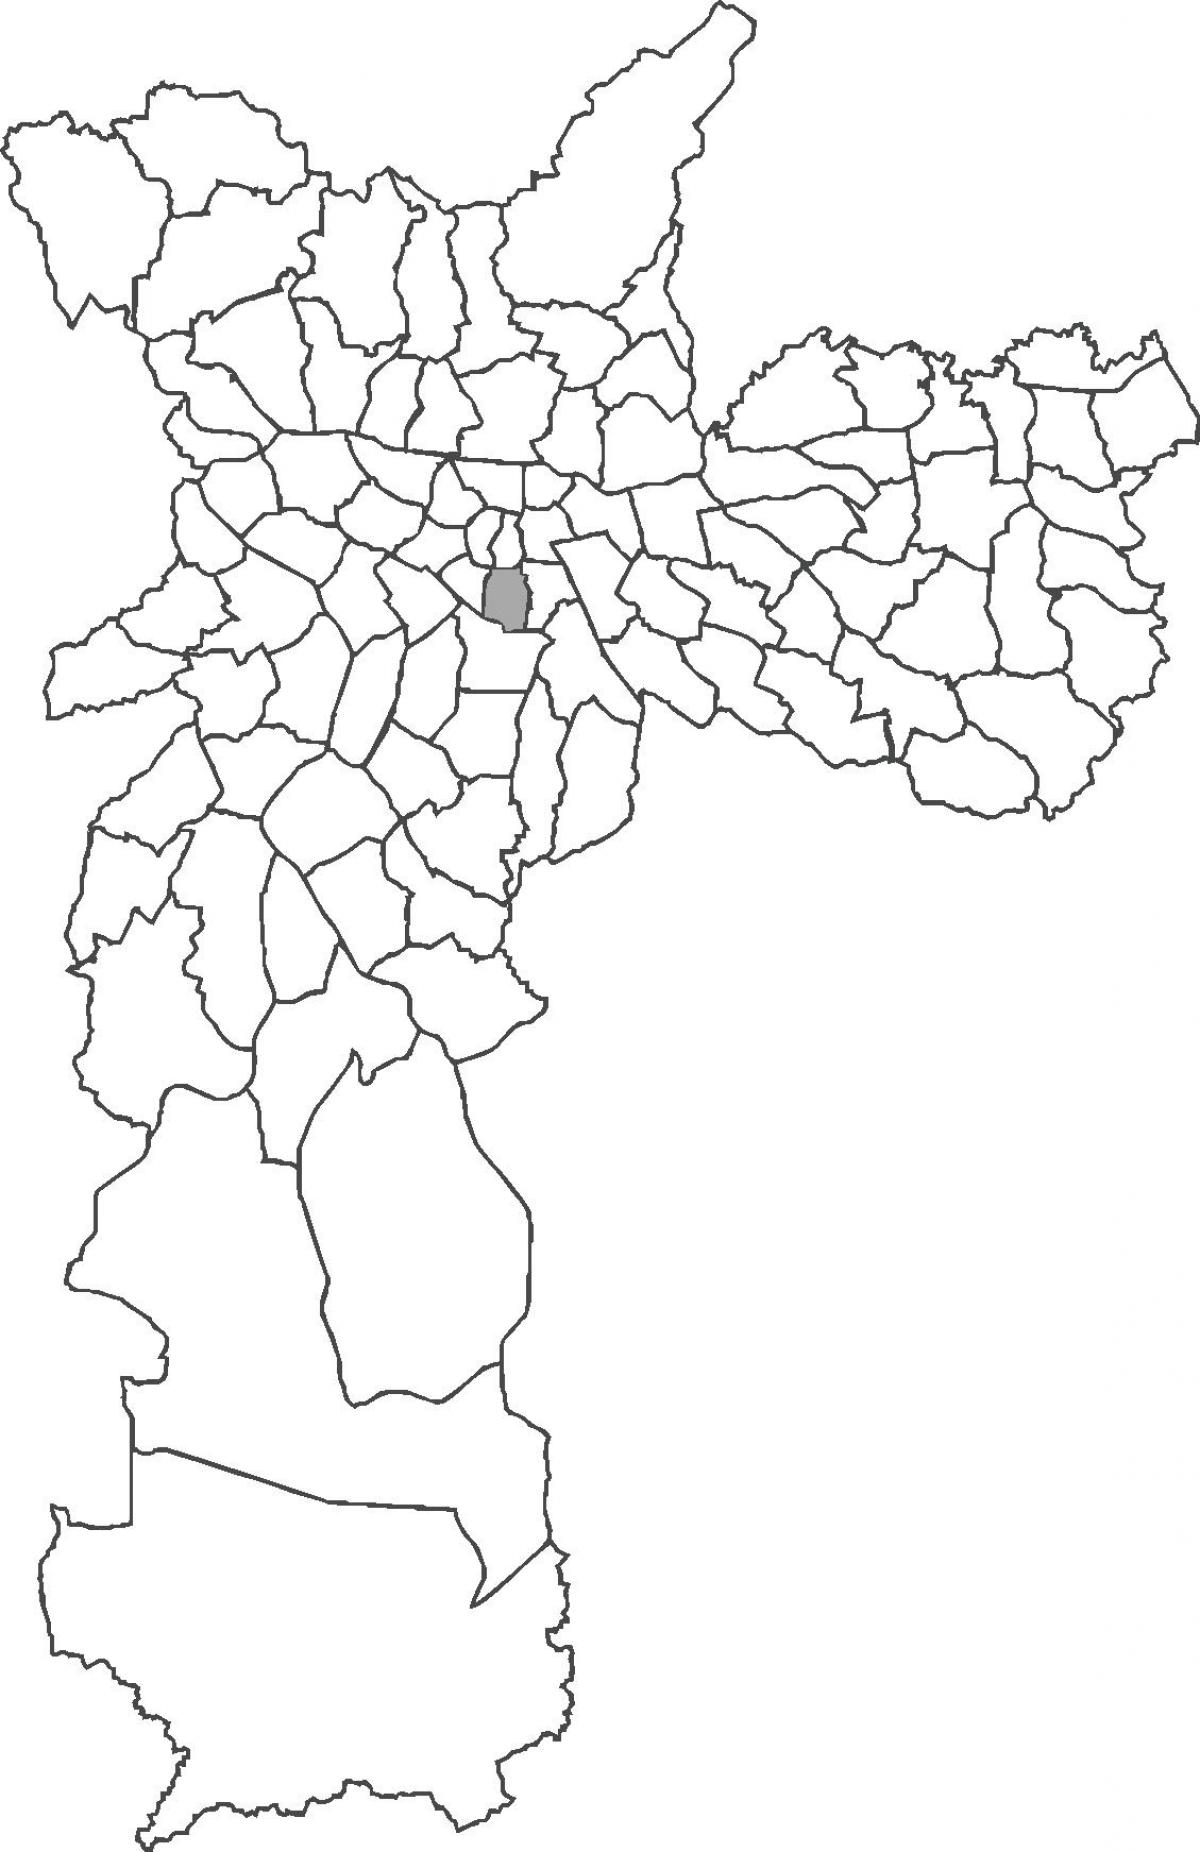 Map of Liberdade district